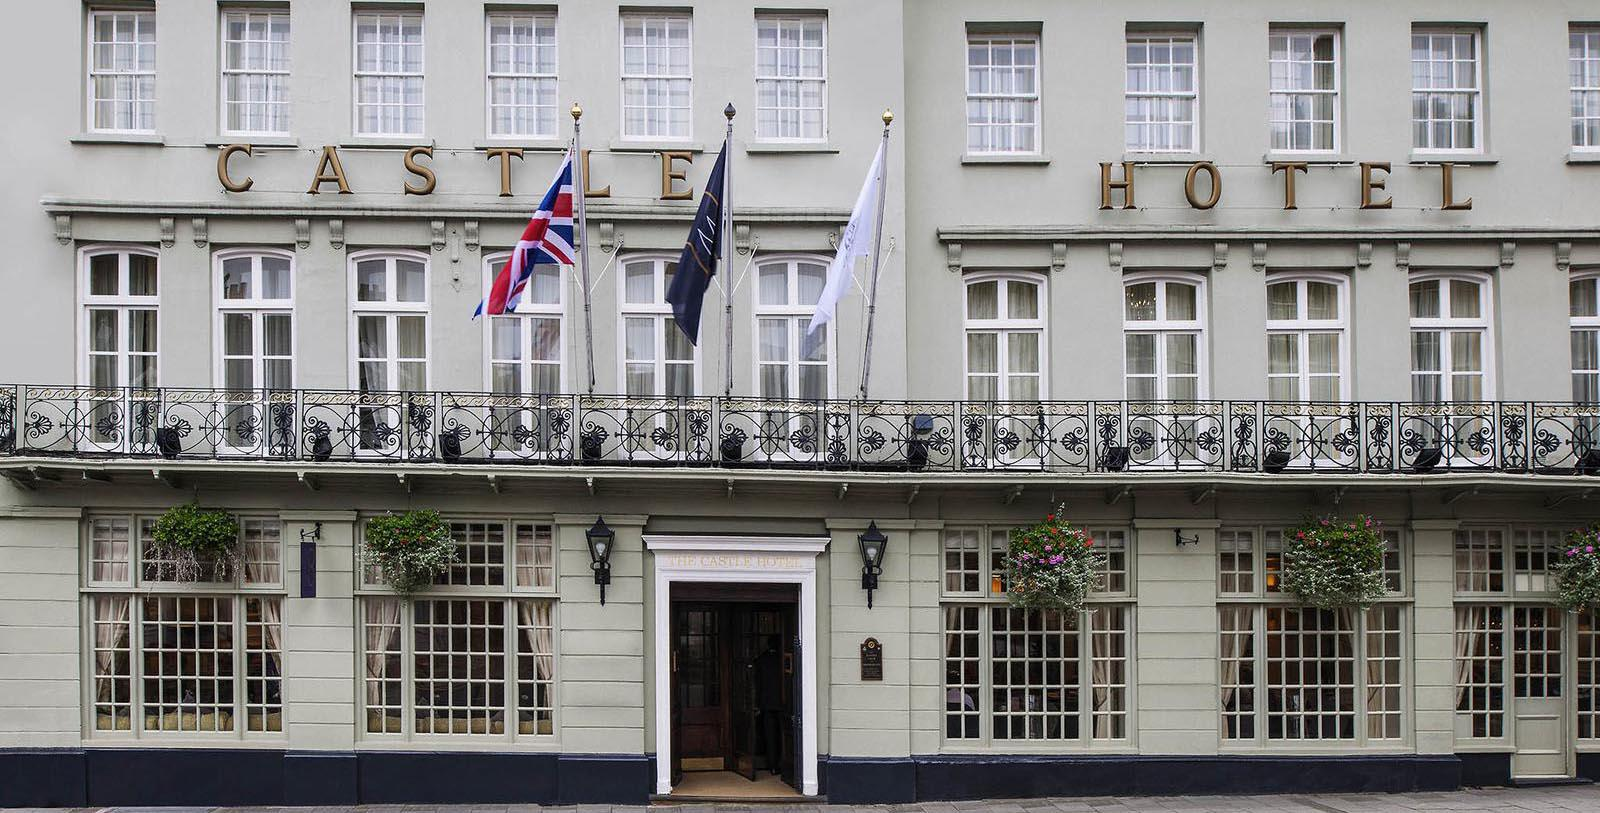 Image of hotel exterior Castle Hotel Windsor, 1528, Member of Historic Hotels Worldwide, in London, United Kingdom, Overview